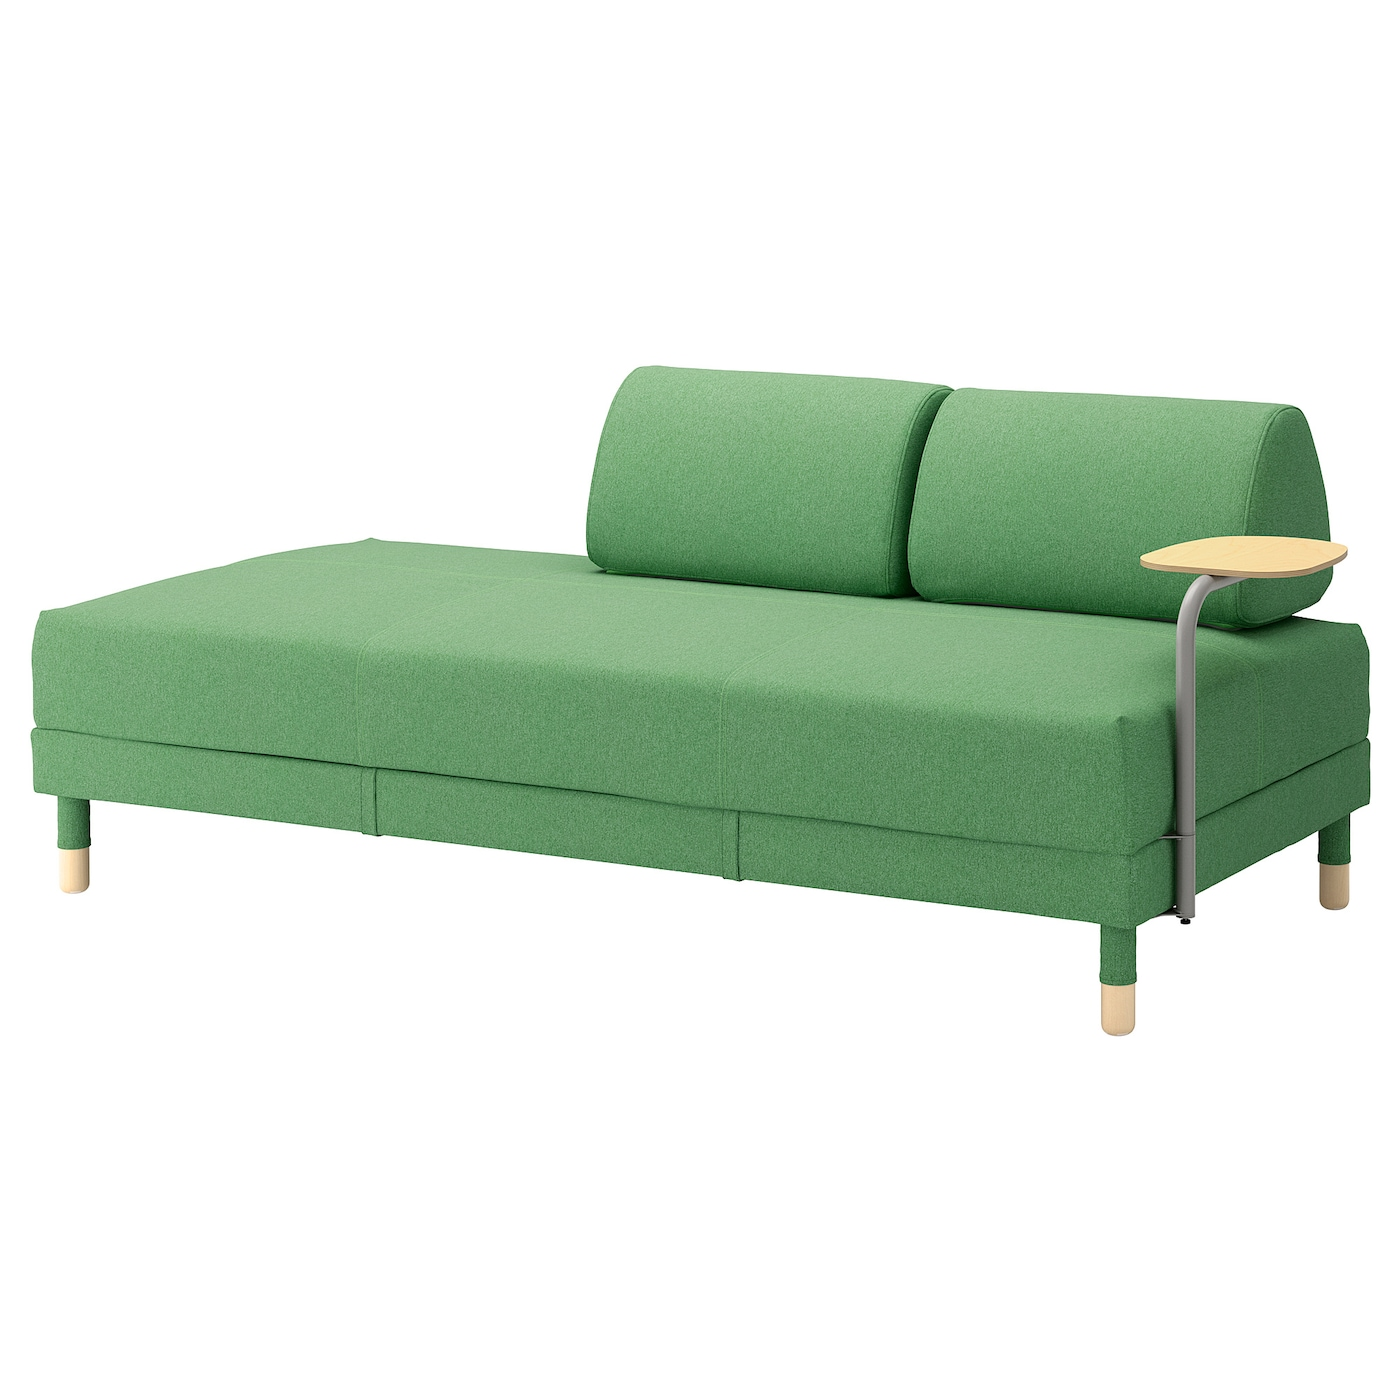 flottebo sofa bed with side table lysed green 90 cm ikea. Black Bedroom Furniture Sets. Home Design Ideas